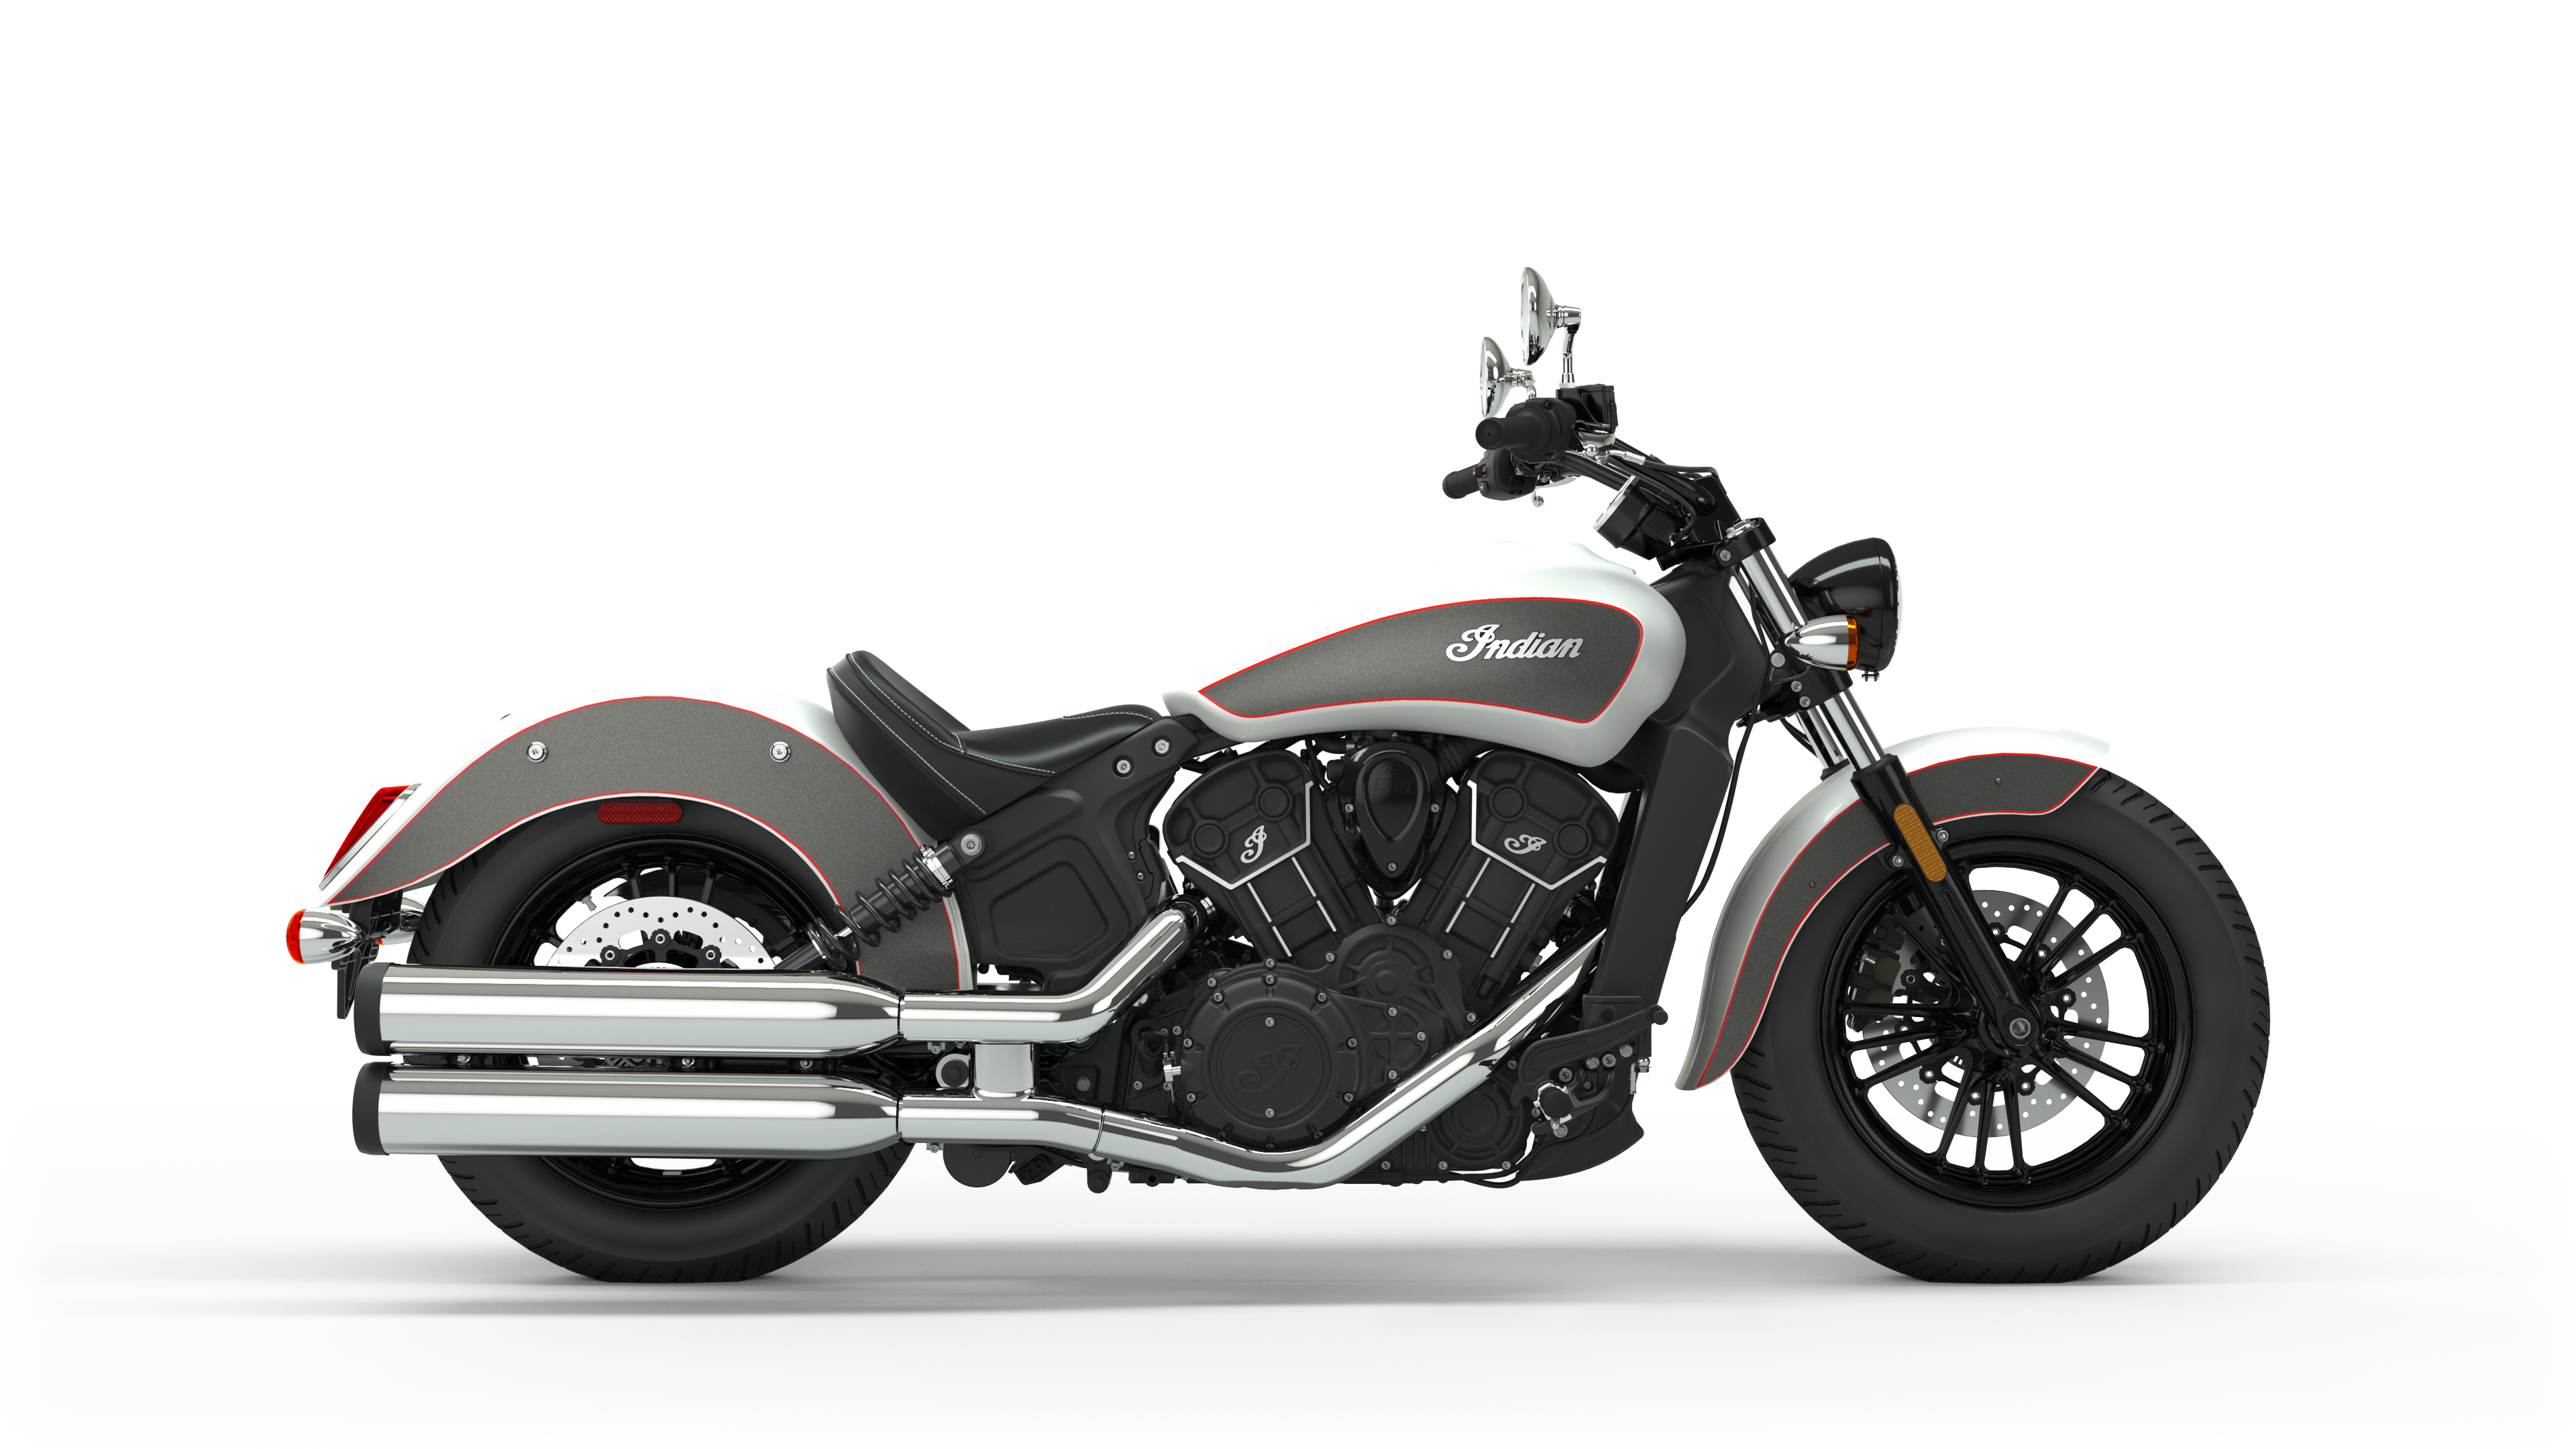 2020 Indian Scout Sixty 2020 Indian Scout Sixty Indian Motorcycles A Perfectly Reasonable Marriage Of Low S Indian Scout Sixty Scout Sixty Indian Scout [ 2160 x 3840 Pixel ]